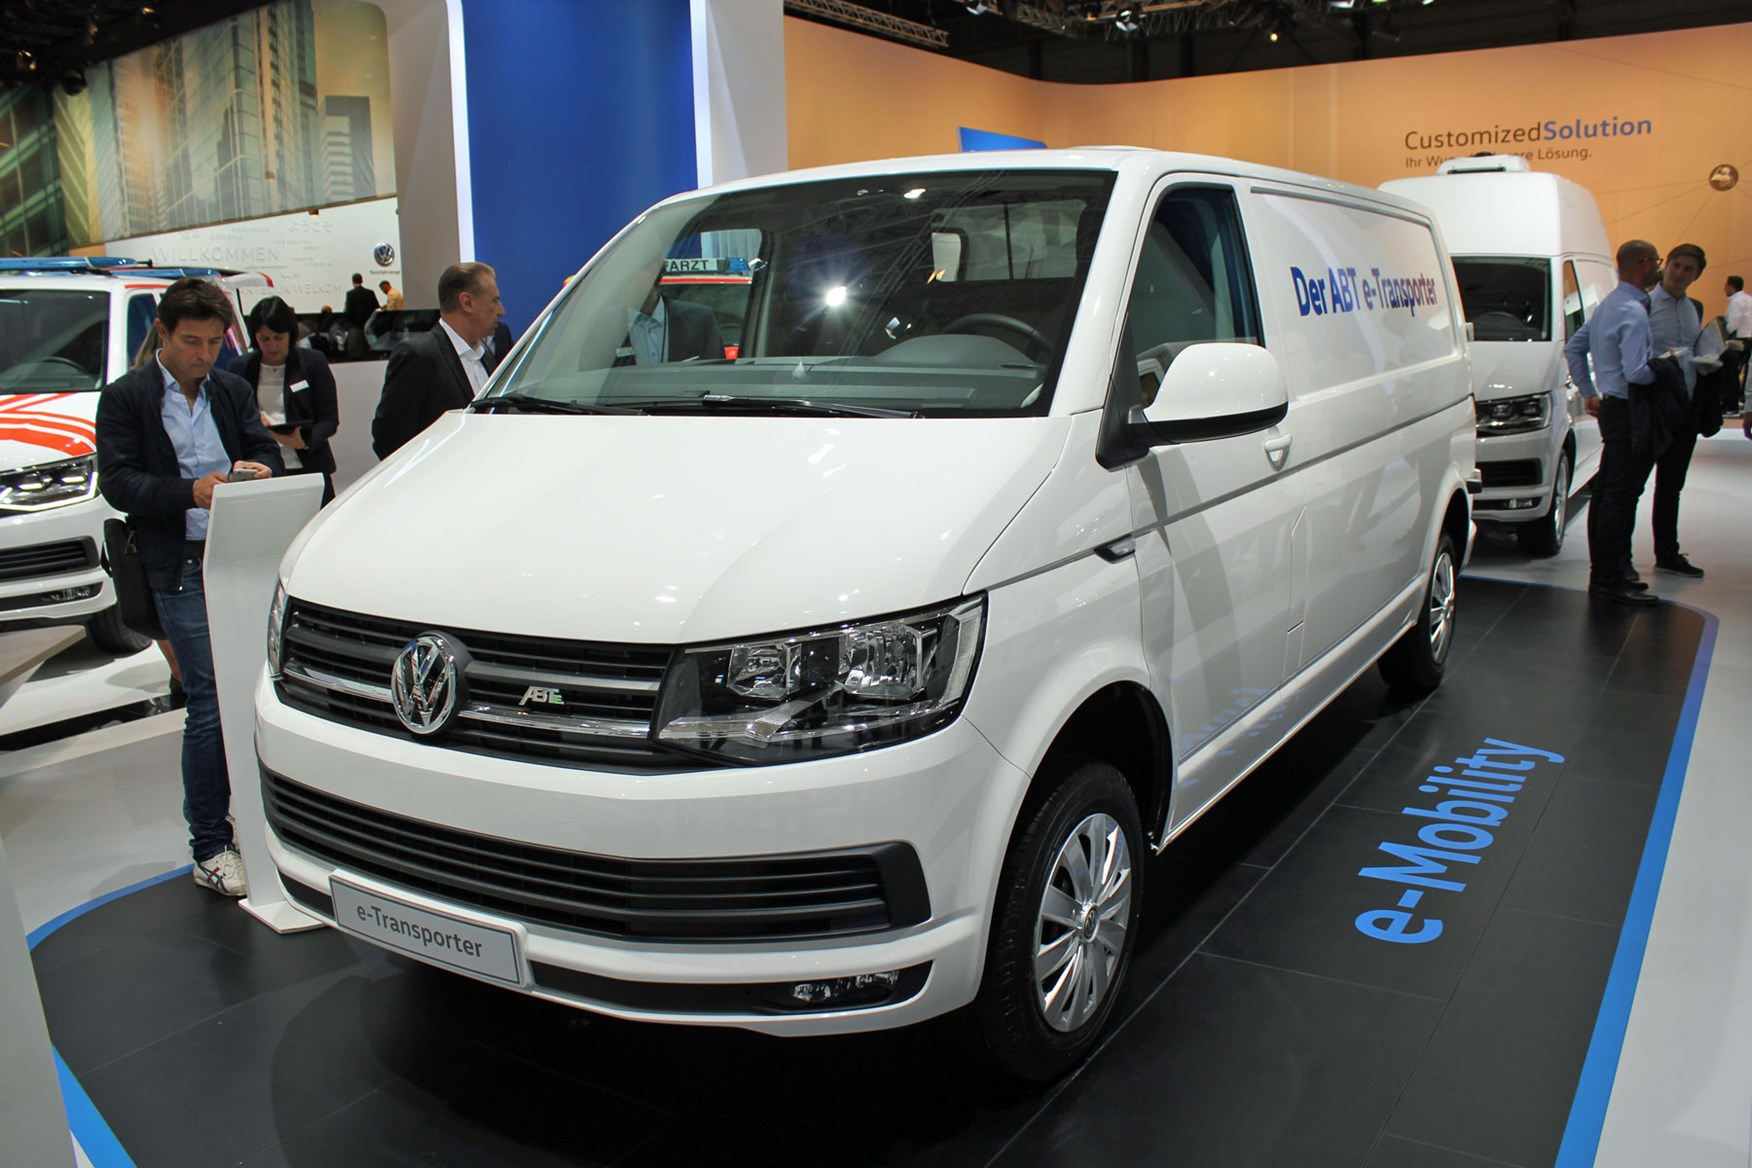 VW e-Transporter by ABT - on show at the IAA commercial vehicle show 2018